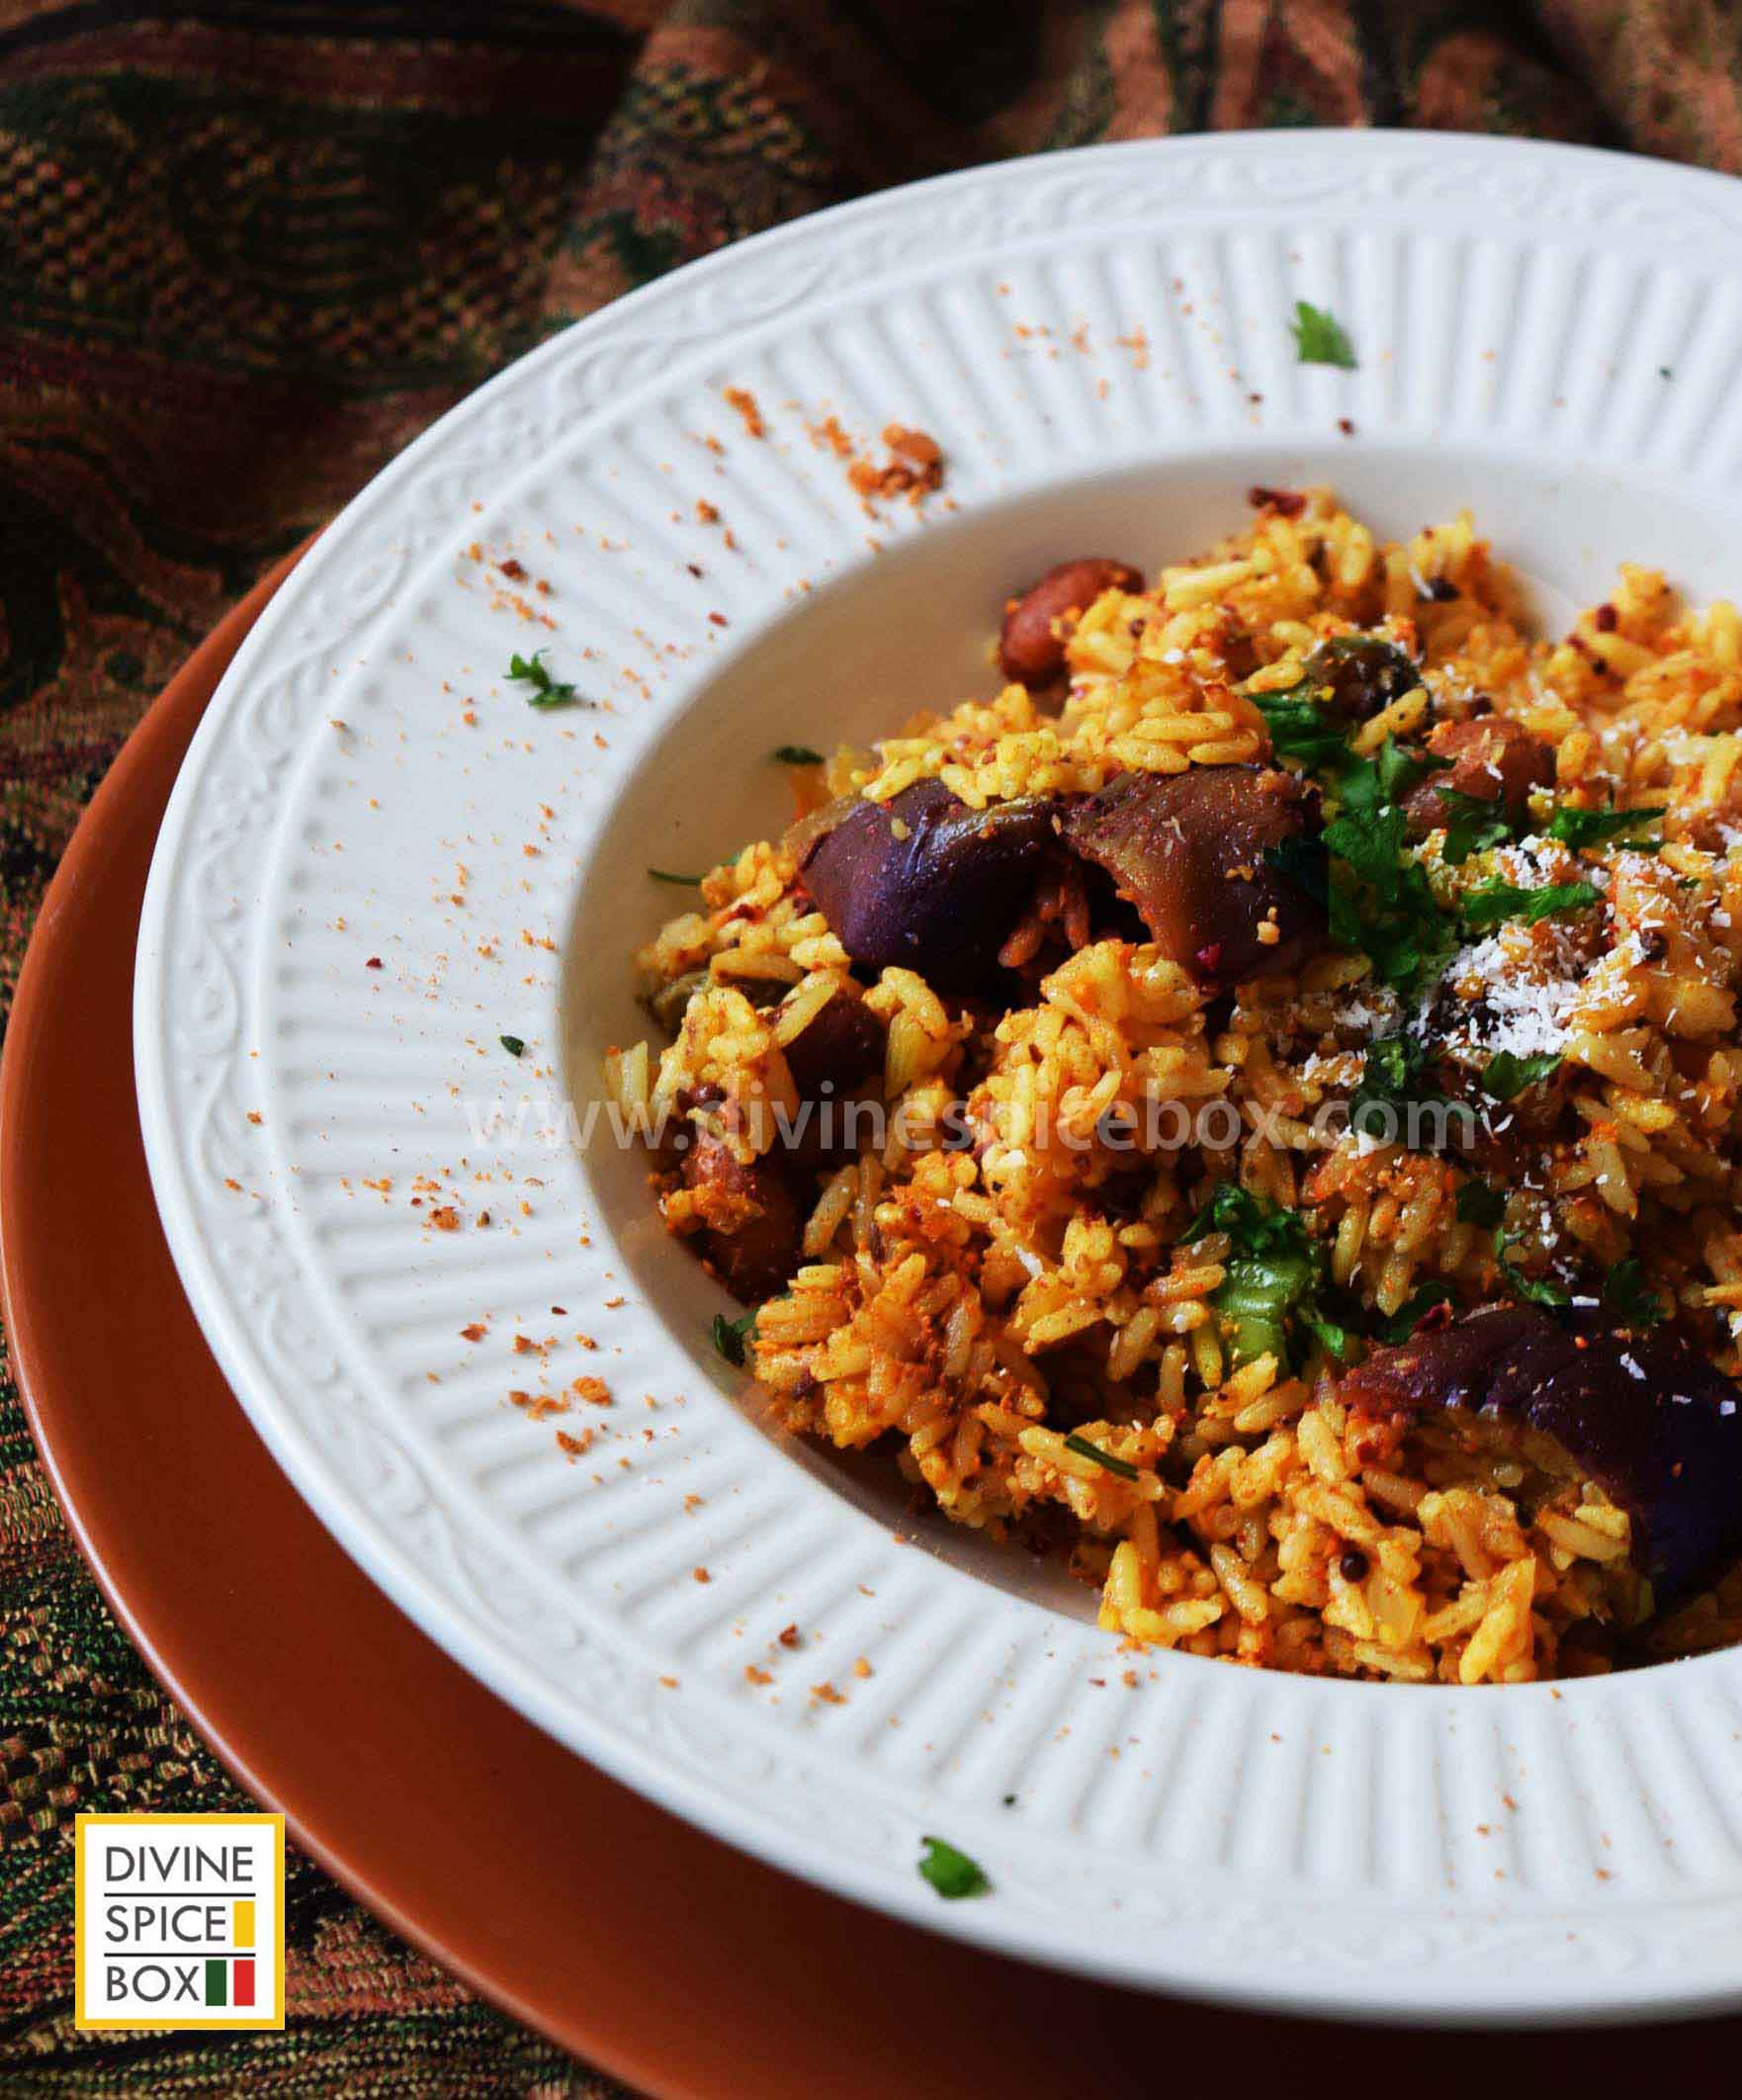 Vaangi Bhaat/ Aubergine rice pilaf with Indian spices